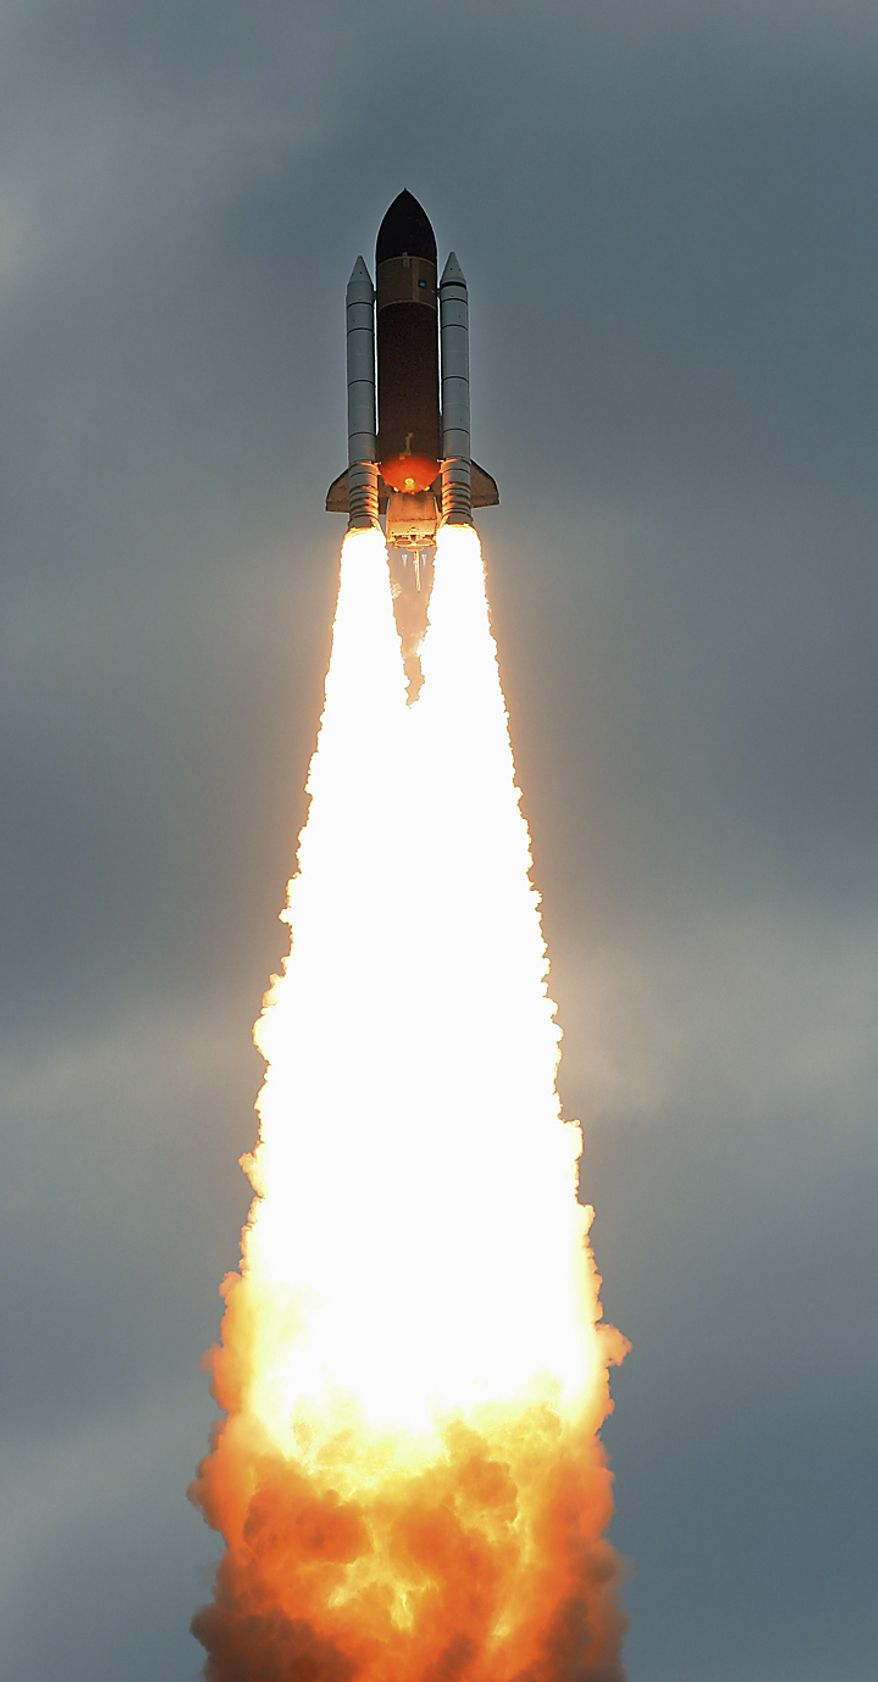 The space shuttle Endeavour lifts off from Kennedy Space Center in Cape Canaveral, Fla., Monday, May 16, 2011. The space shuttle Endeavour began a 14-day mission to the international space station. (AP Photo/Marta Lavandier)